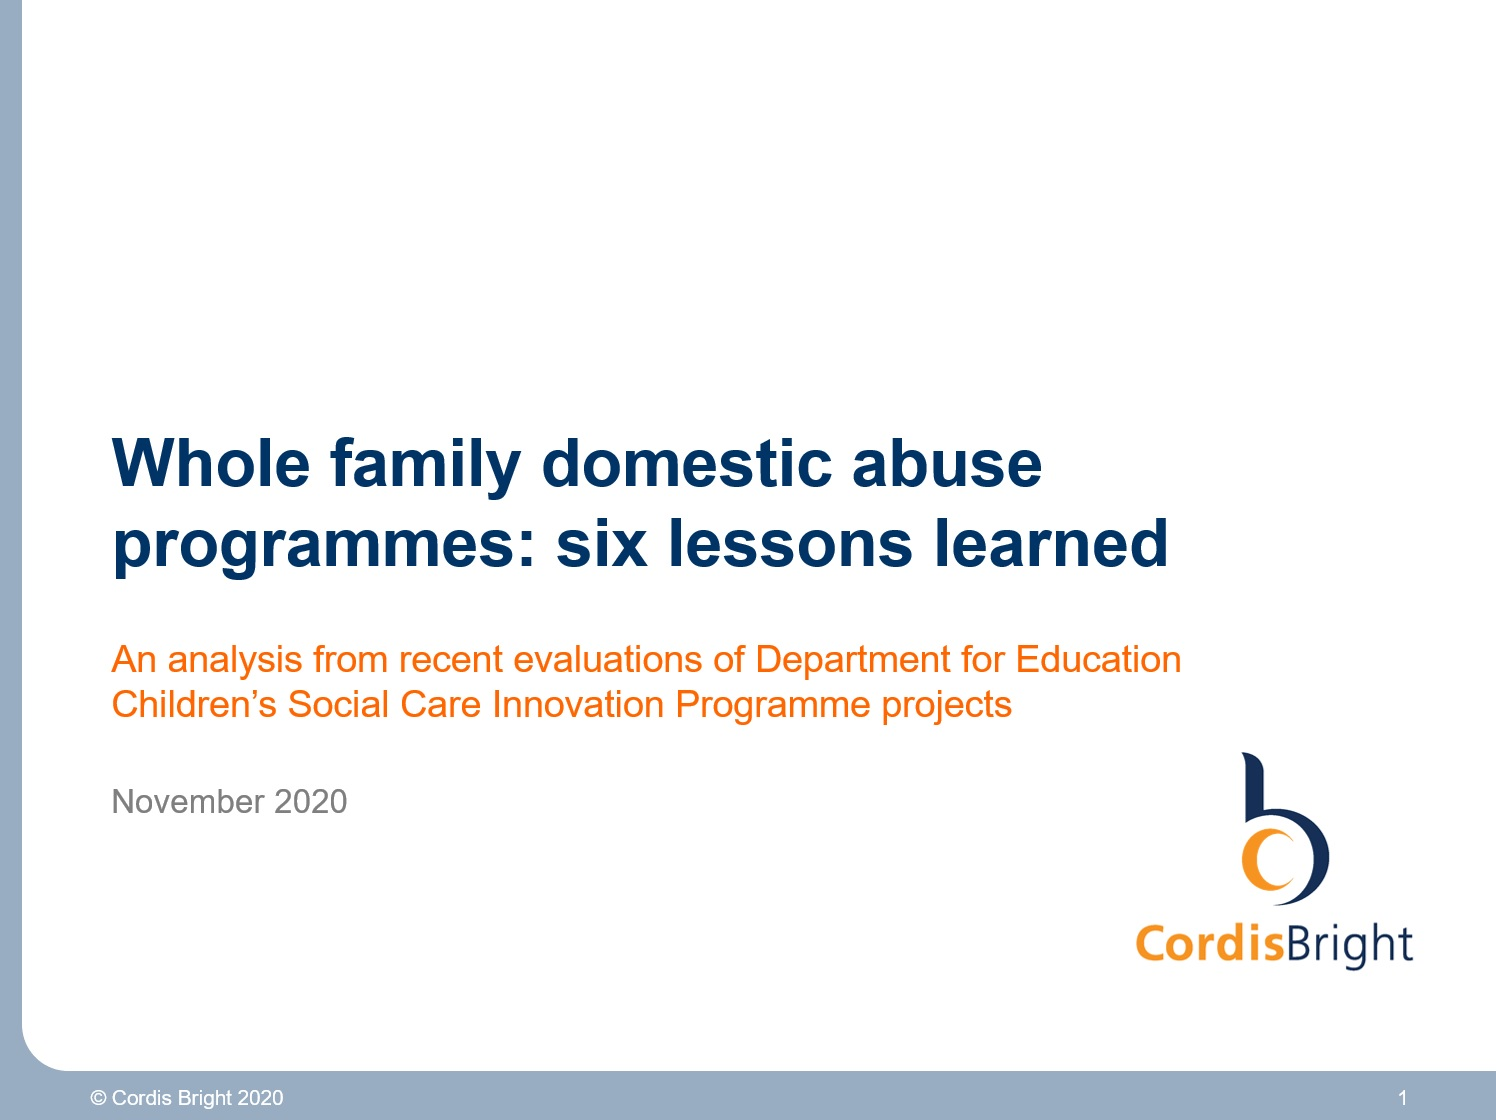 Whole family domestic abuse programmes